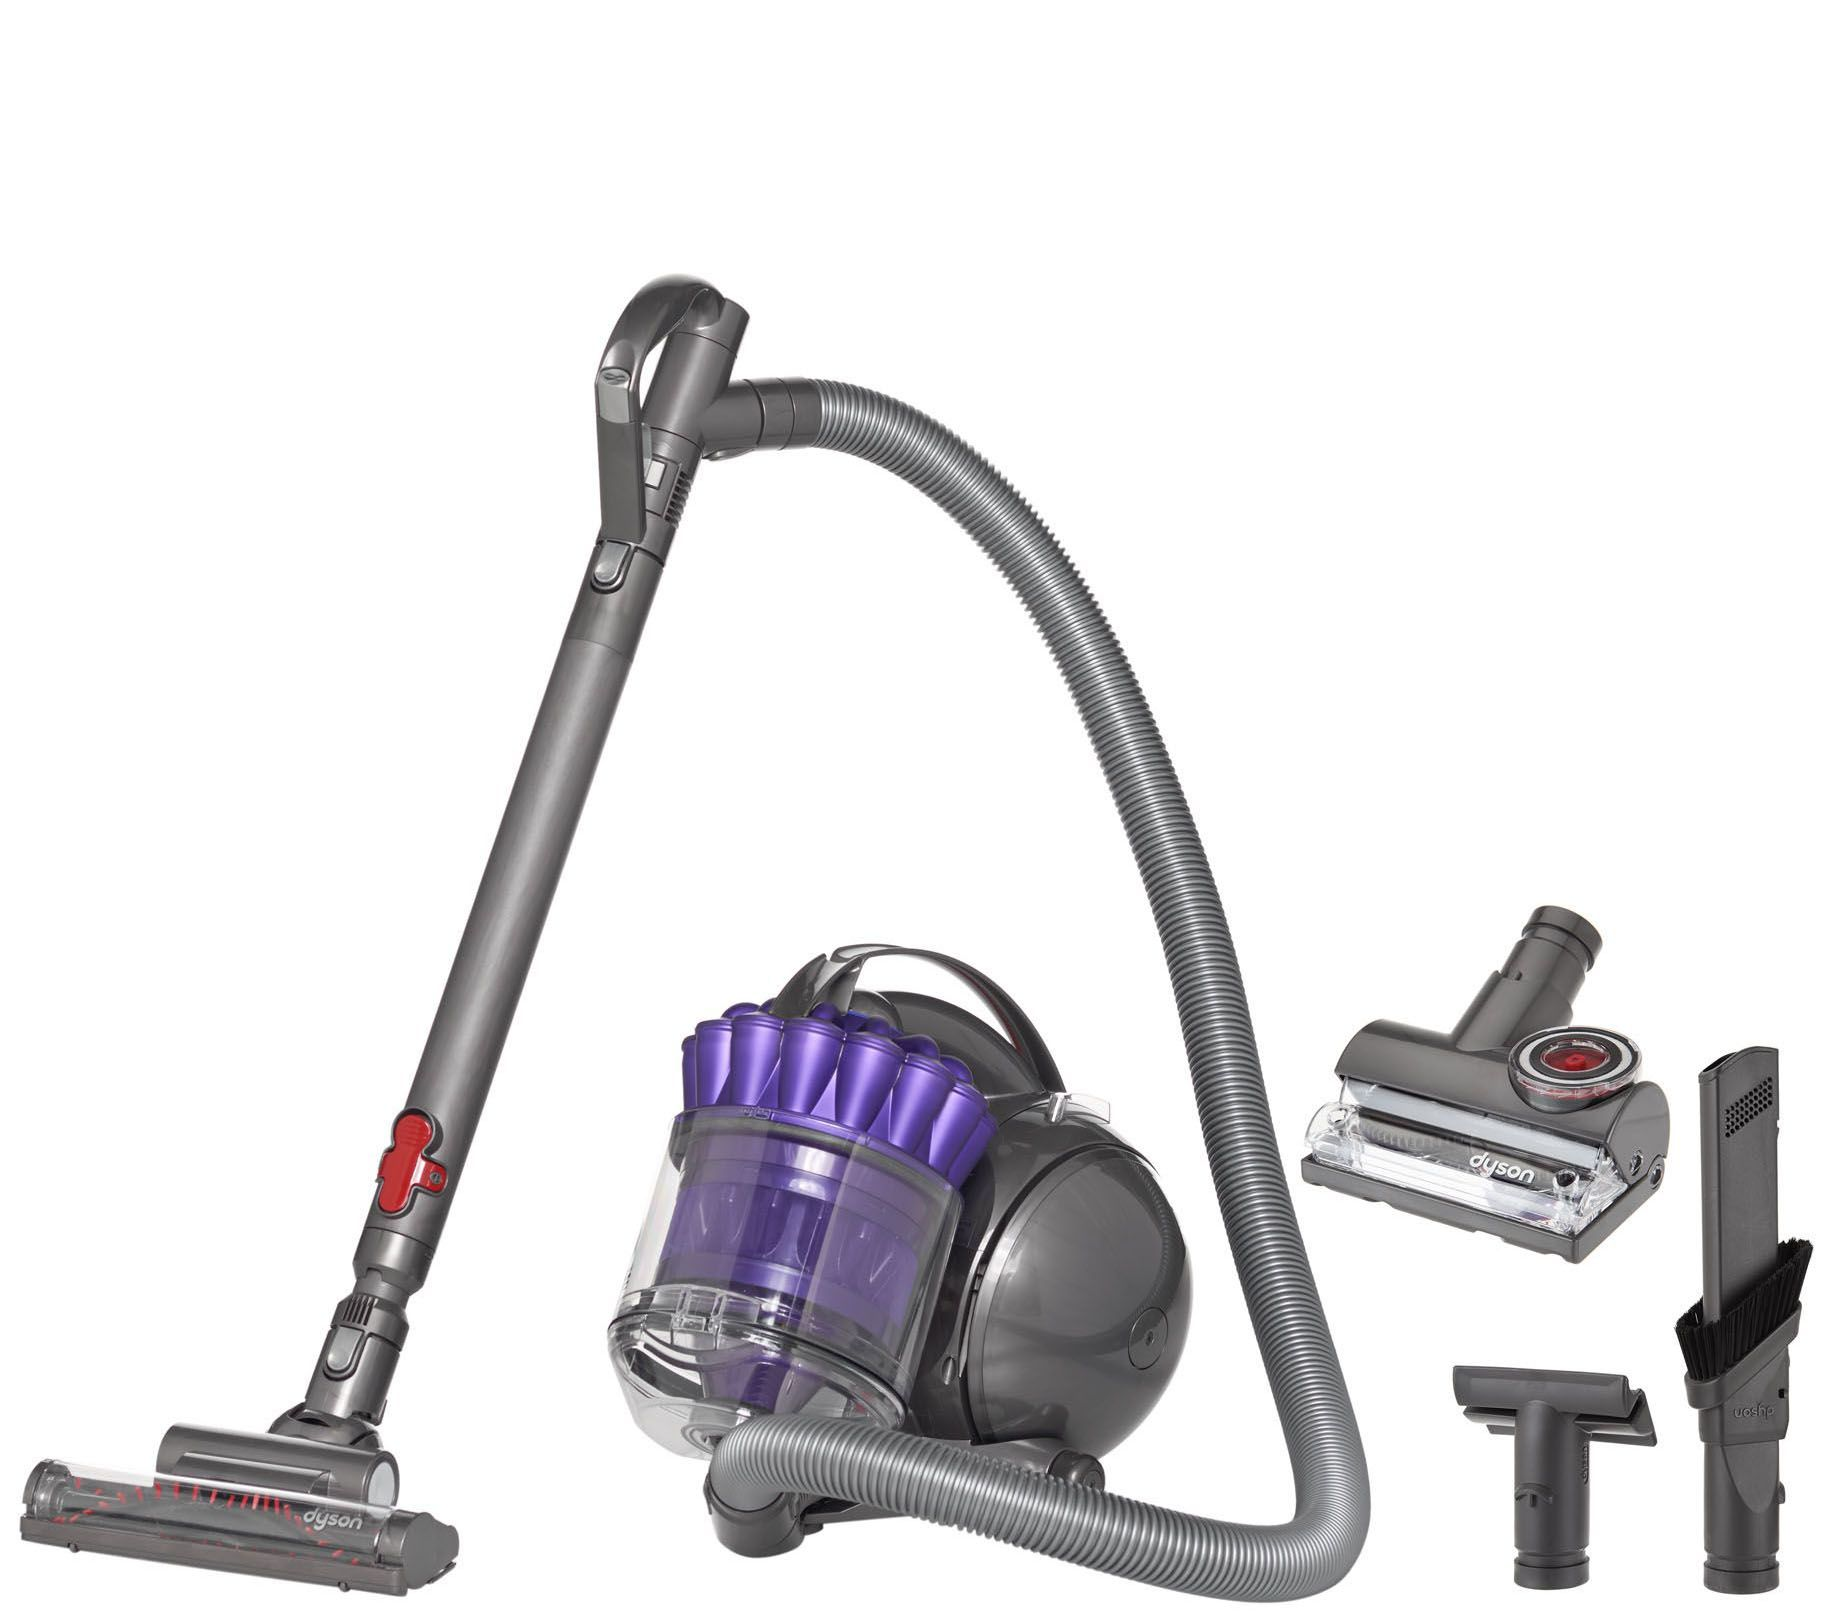 dyson ball animal canister vacuum with tools hepa filtration page 1. Black Bedroom Furniture Sets. Home Design Ideas